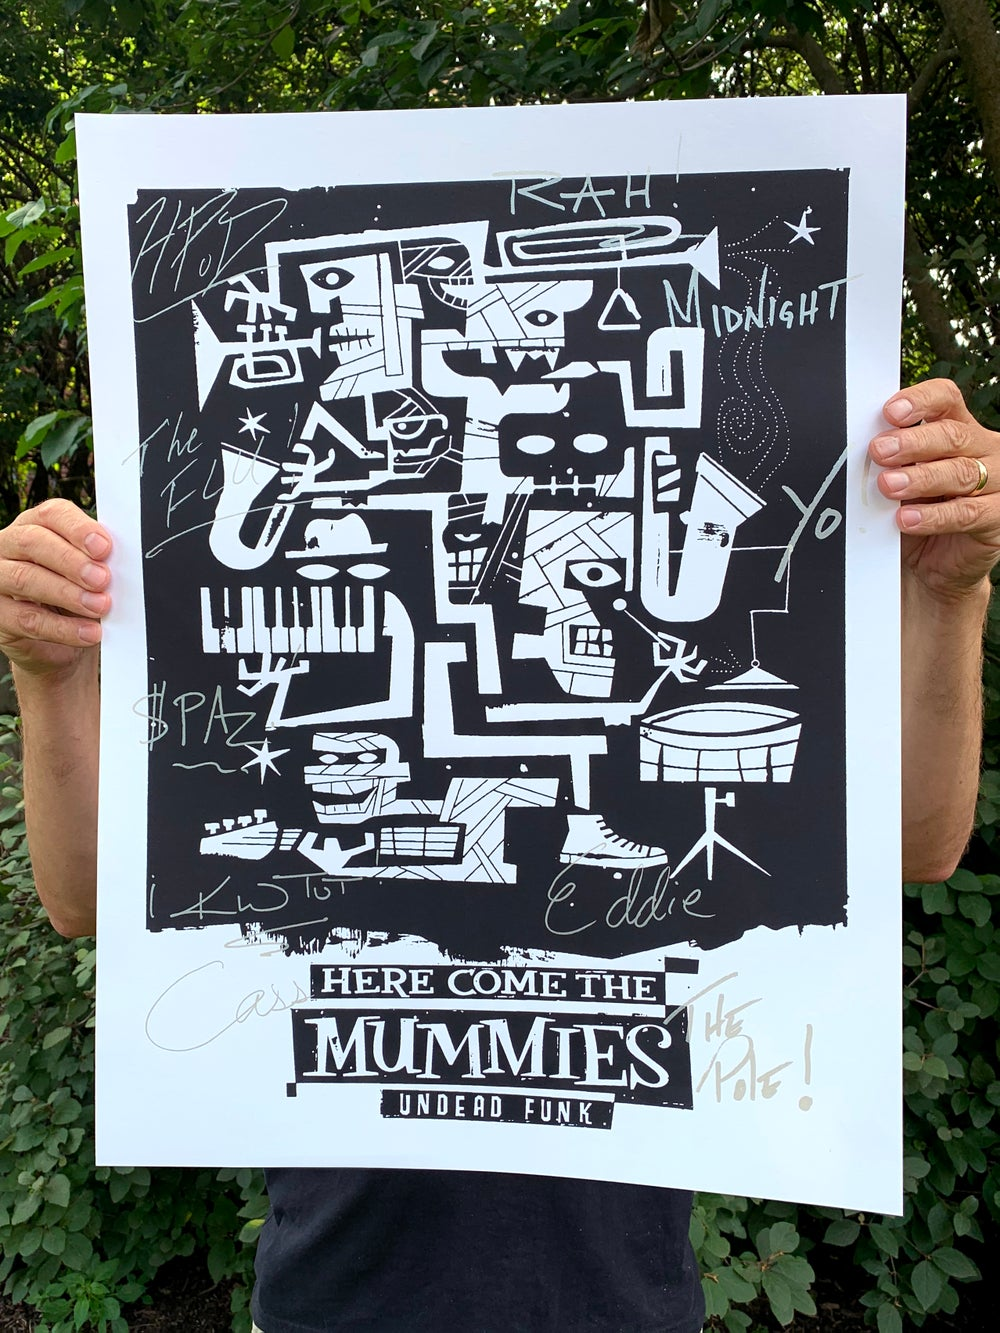 Here Come the Mummies - Undead Funk Signature Series